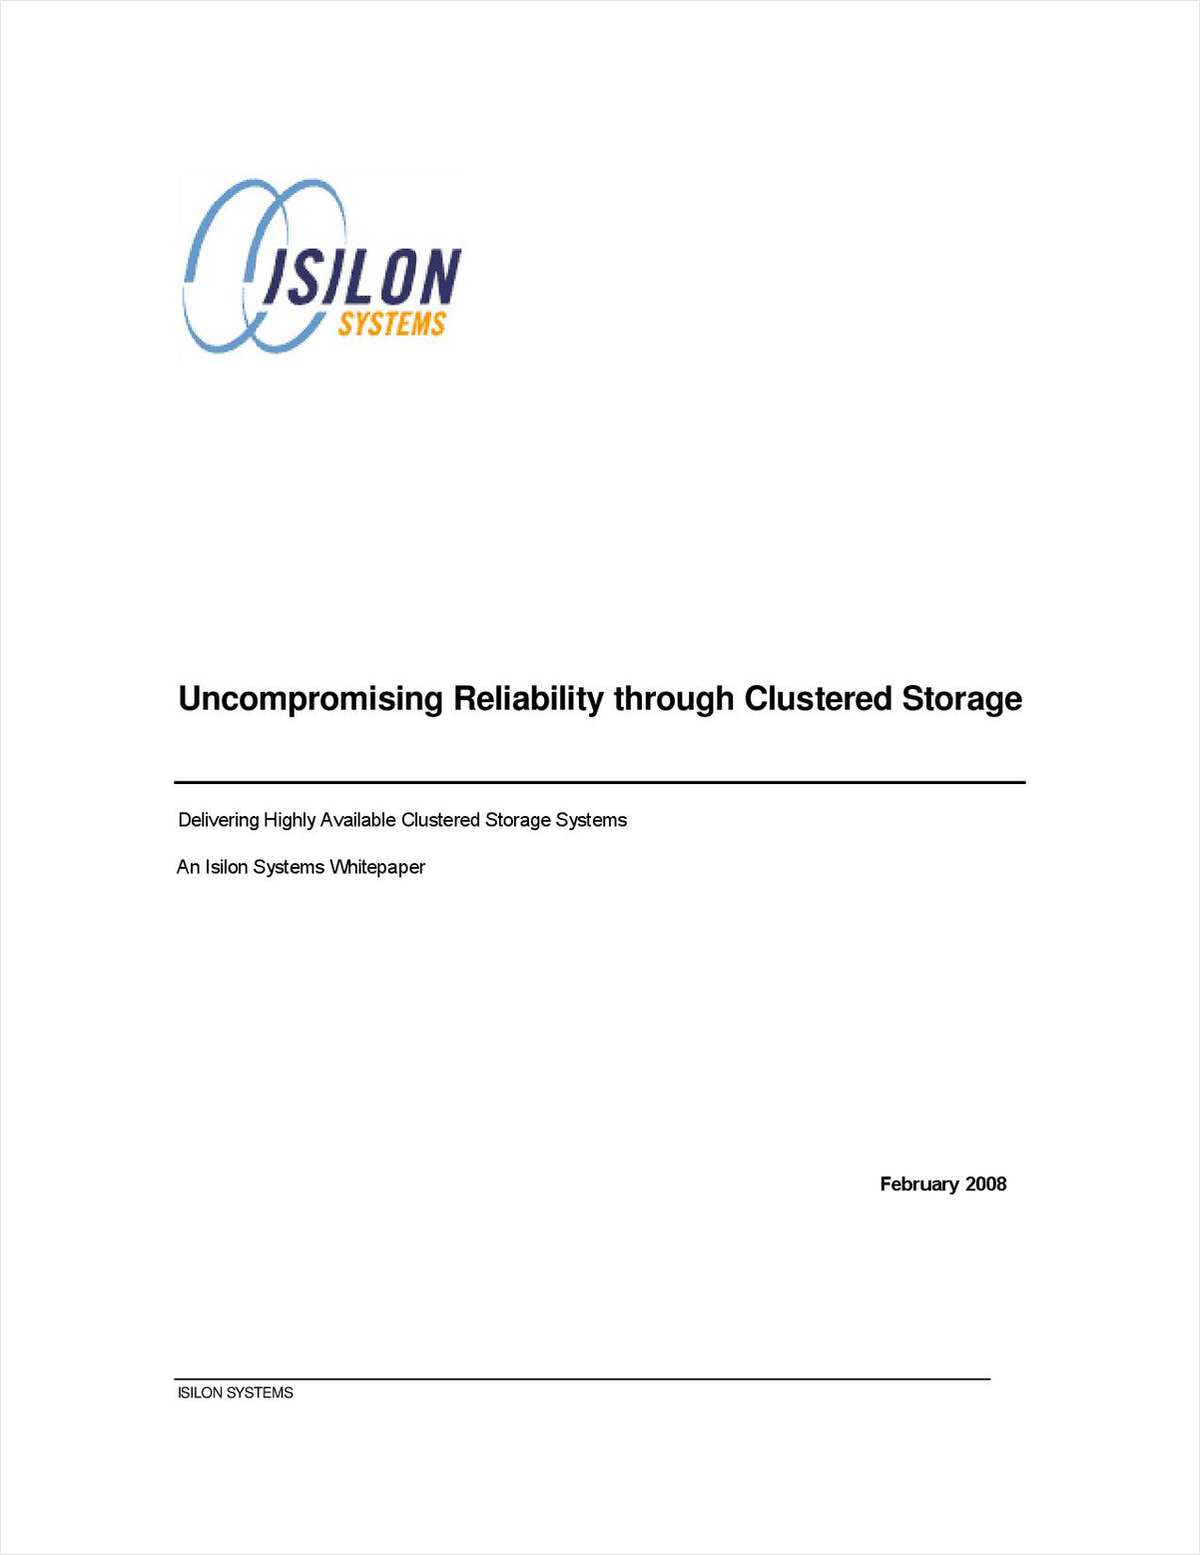 Uncompromising Reliability Through Isilon Scale-out Storage